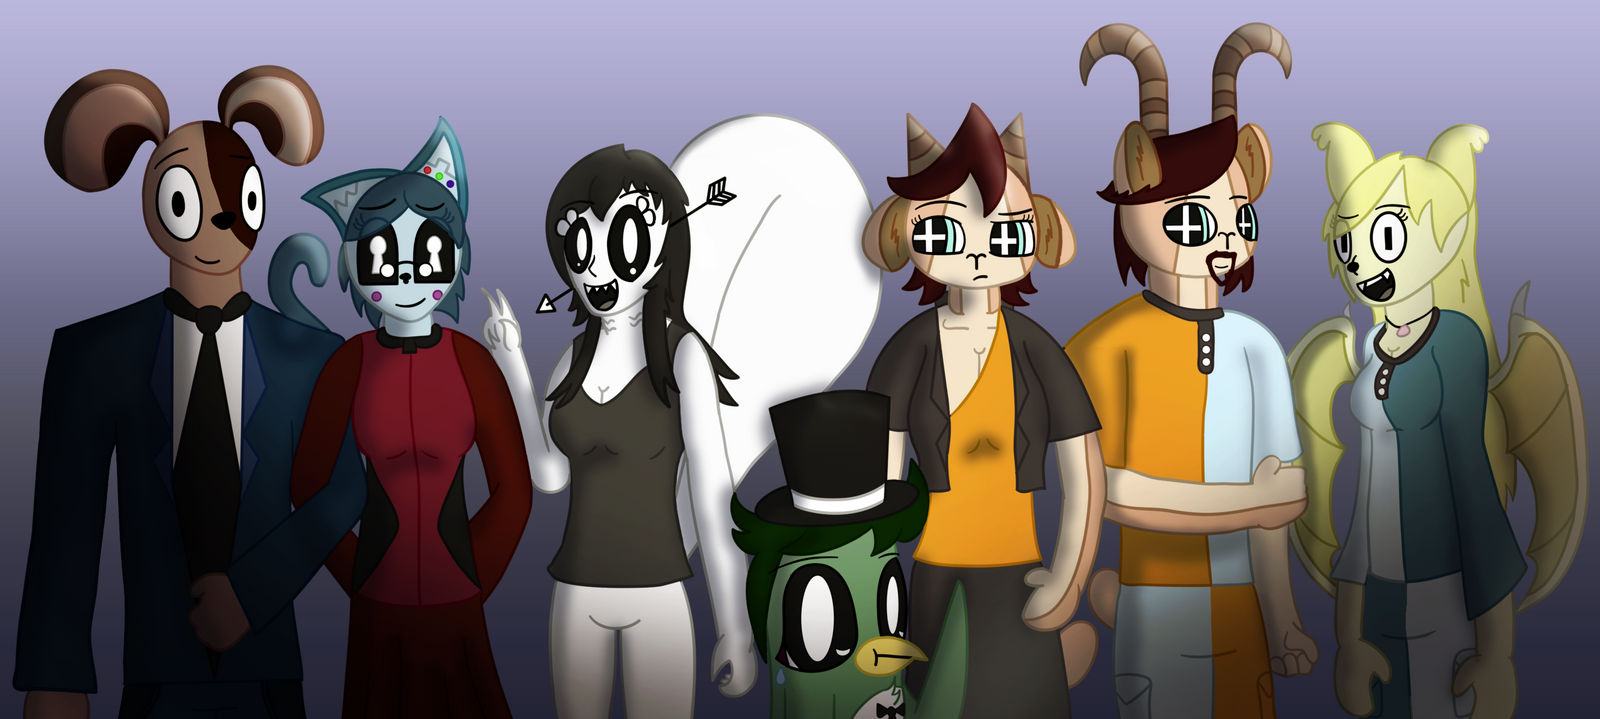 Nyah Has an Adventure Cast Poster v2 by NeonWabbit